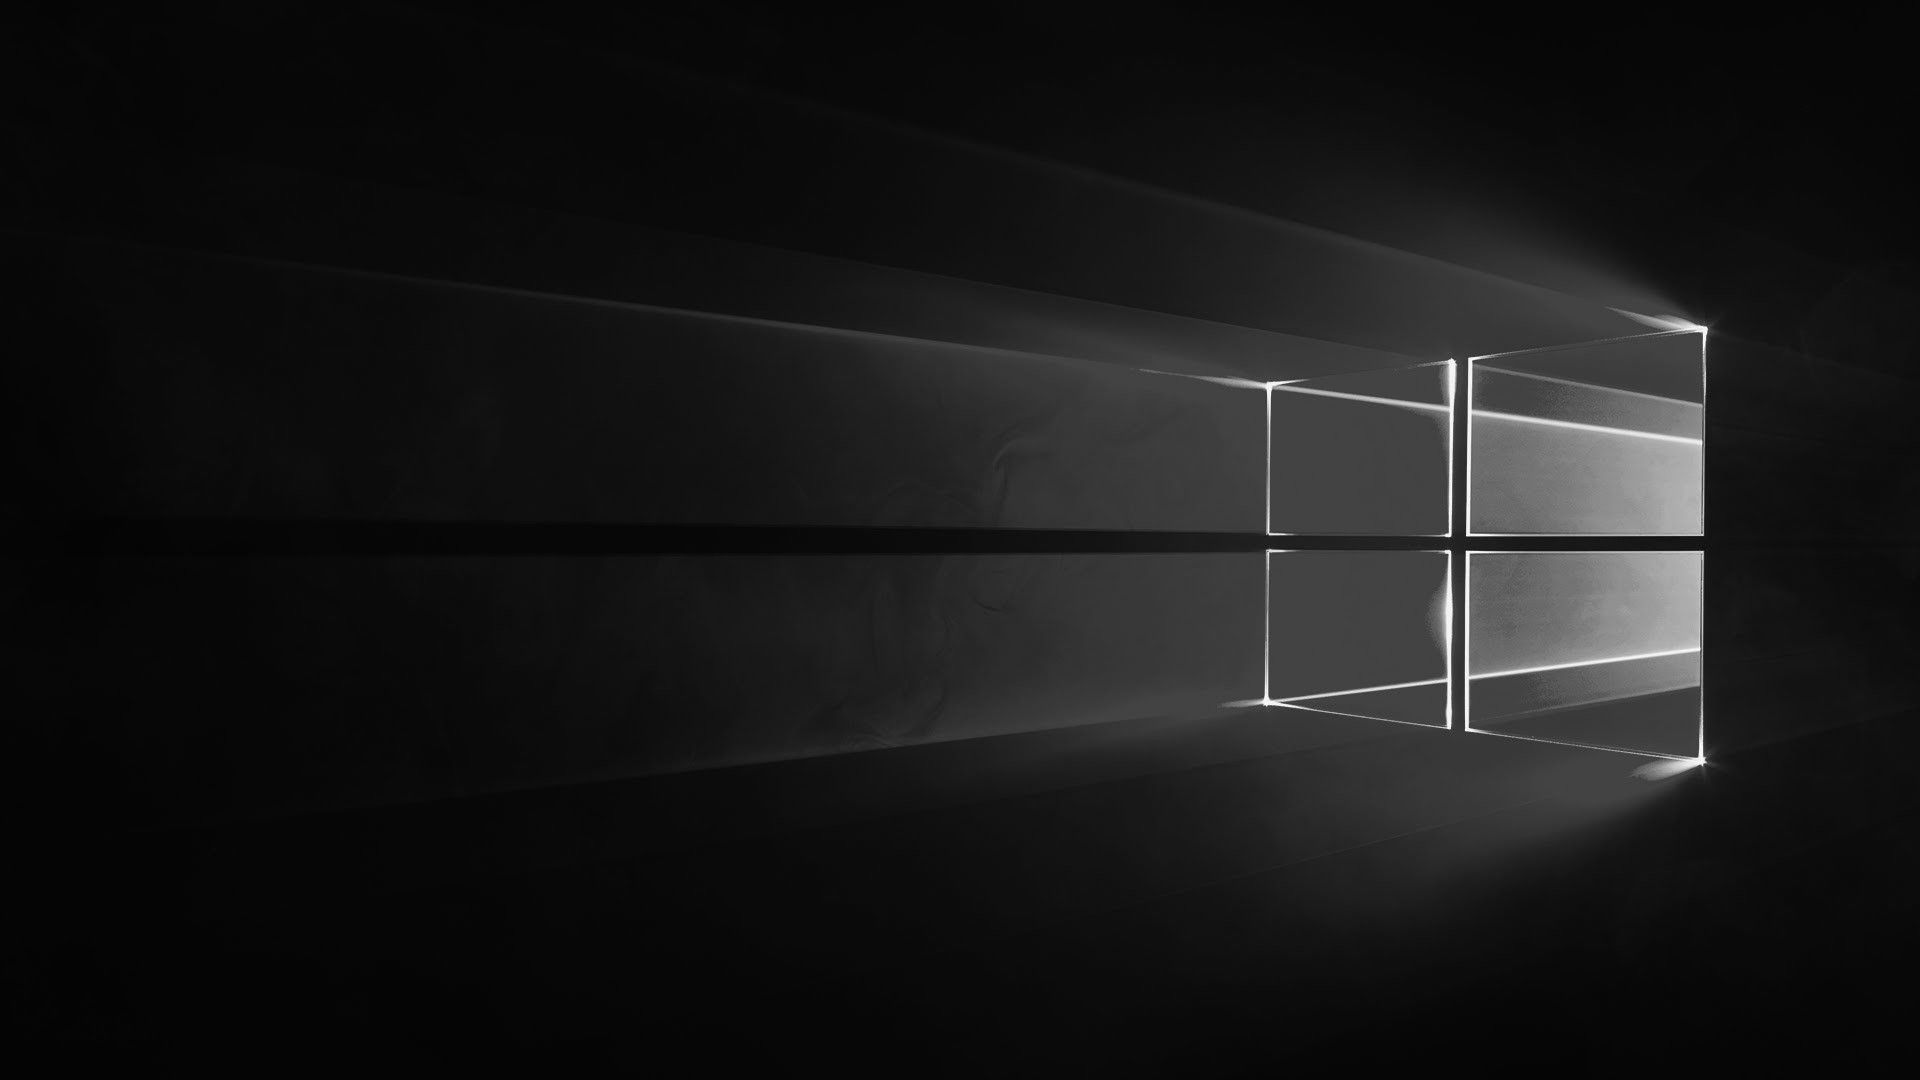 Black Windows 10 Hd Wallpapers Top Free Black Windows 10 Hd Backgrounds Wallpaperaccess